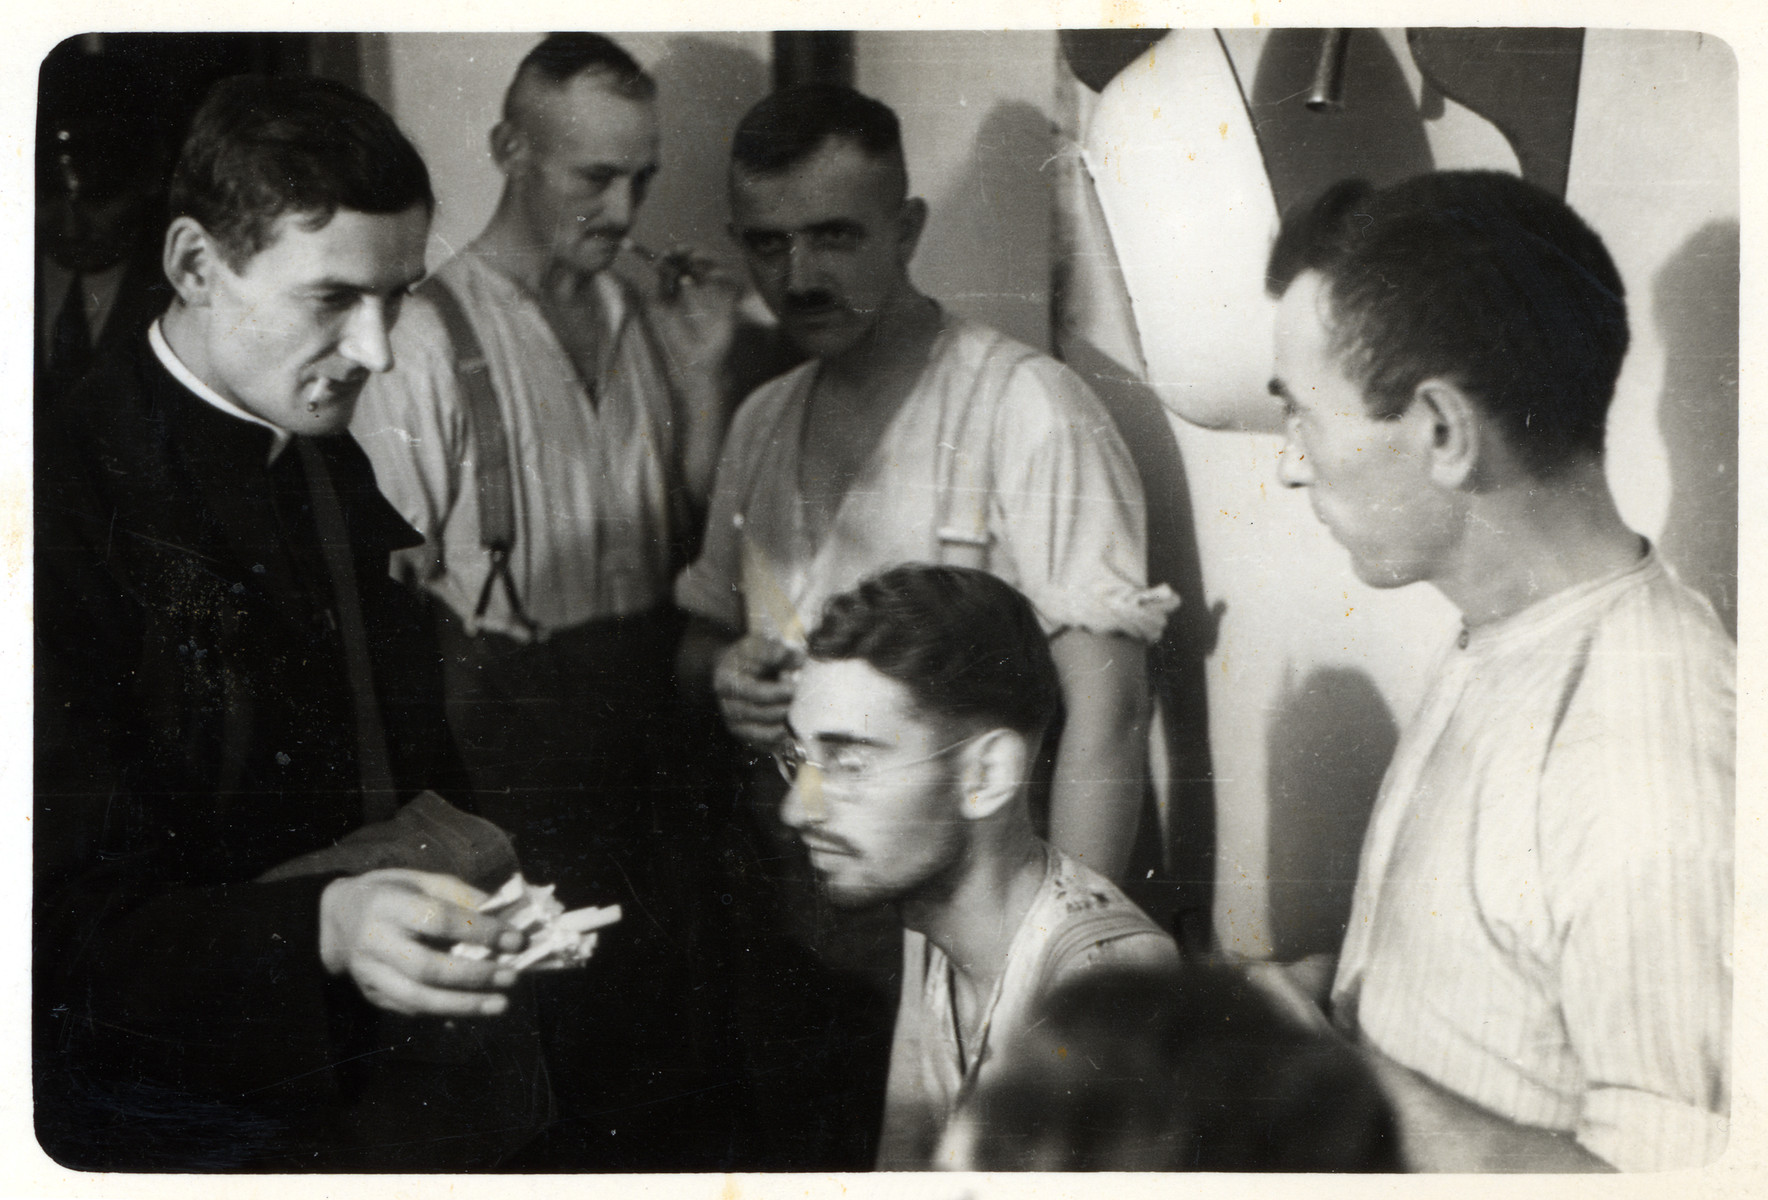 A Polish priest offers cigarettes to German POWs.